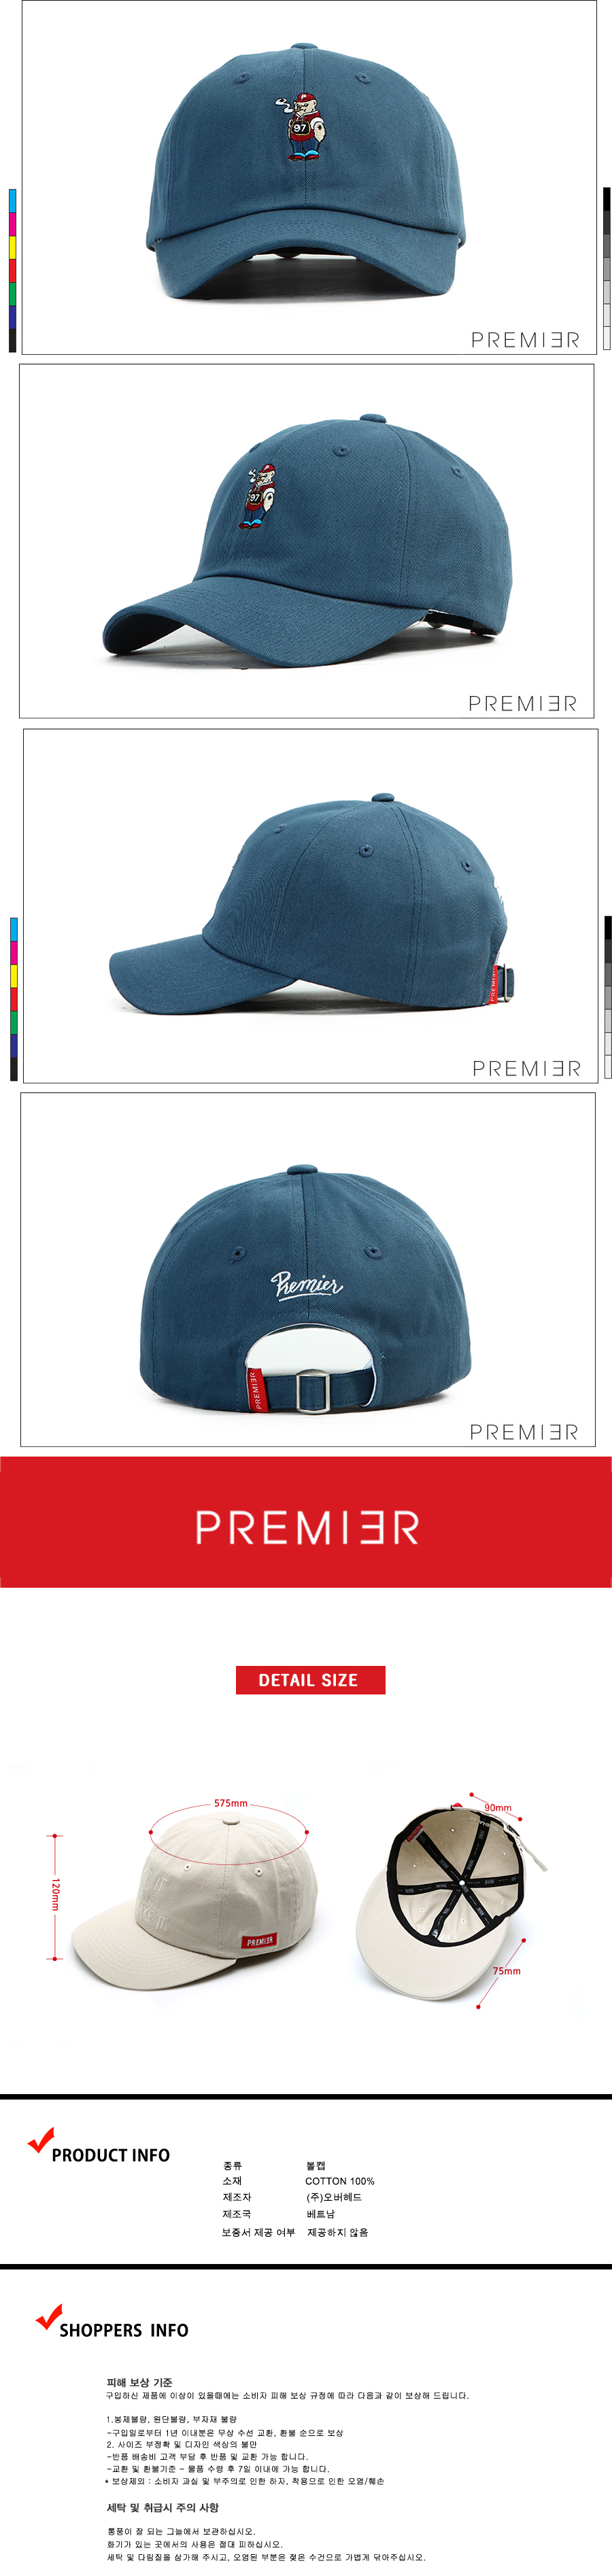 [ PREMIER ] [Premier] Ball Cap 97 Bear Blue (P936)